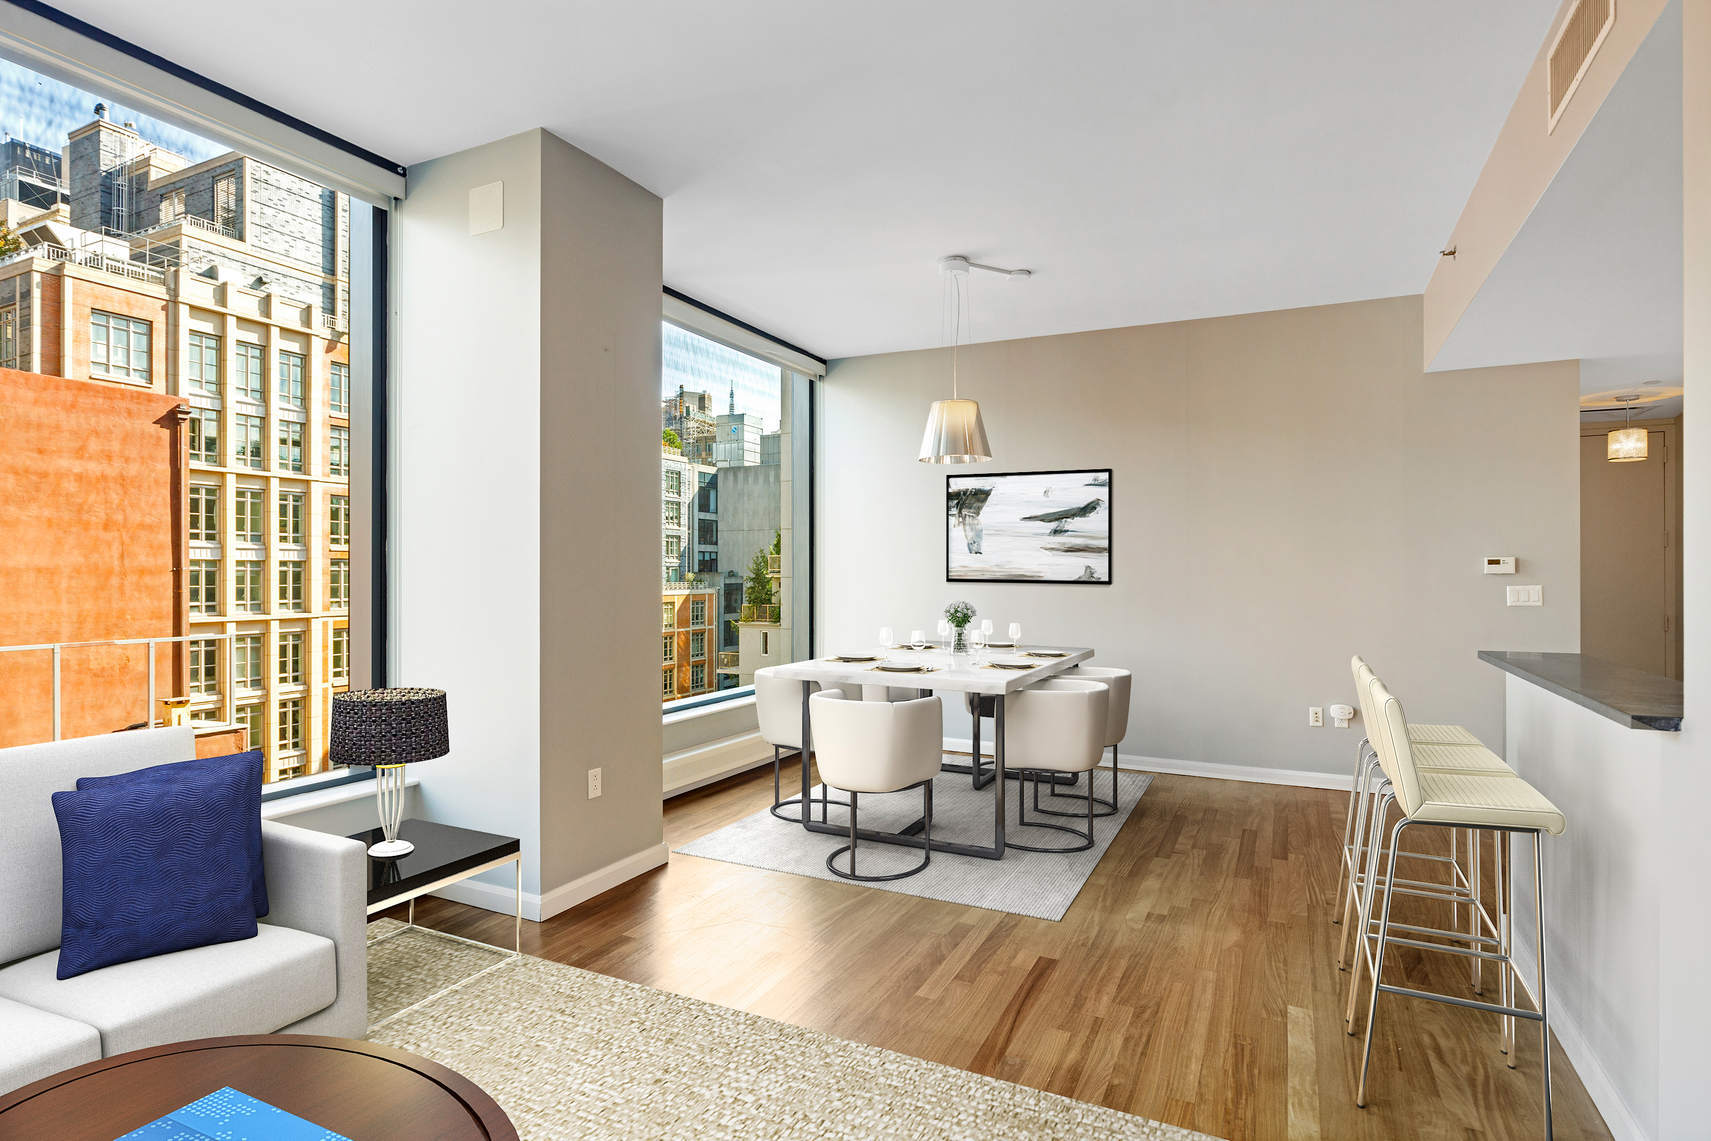 Live in luxury in this bright and oversized one bedroom in highly sought after 505 Greenwich Street.9F easily converts to a 2 bedroom home but many will appreciate the oversized living/dining rooms with nearly 10 foot ceilings which make this already large home feel more expansive. Add the wall of windows with beautiful city and open sky views and you know you've found home.In home washer/dryer, central a/c, subzero fridge, wine fridge and viking range are some of the many outstanding features of 9F. Separate storage is included.The fabulous building has 24-hour doorman / concierge, gym, pet spa, expansive zen garden, bike storage and live-in superintendent.If you don't know the area, you owe it to yourself to check it out - easy proximity to Tribeca, SoHo and the West Village. There are numerous restaurants and bars frequented and loved by locals. Hudson River Park is just blocks away with jogging and bike paths and green space. Very close to the 1 and C/E trains. Bring your pets and call this home.Taxes reflect condo/co-op abatement for primary ownership.